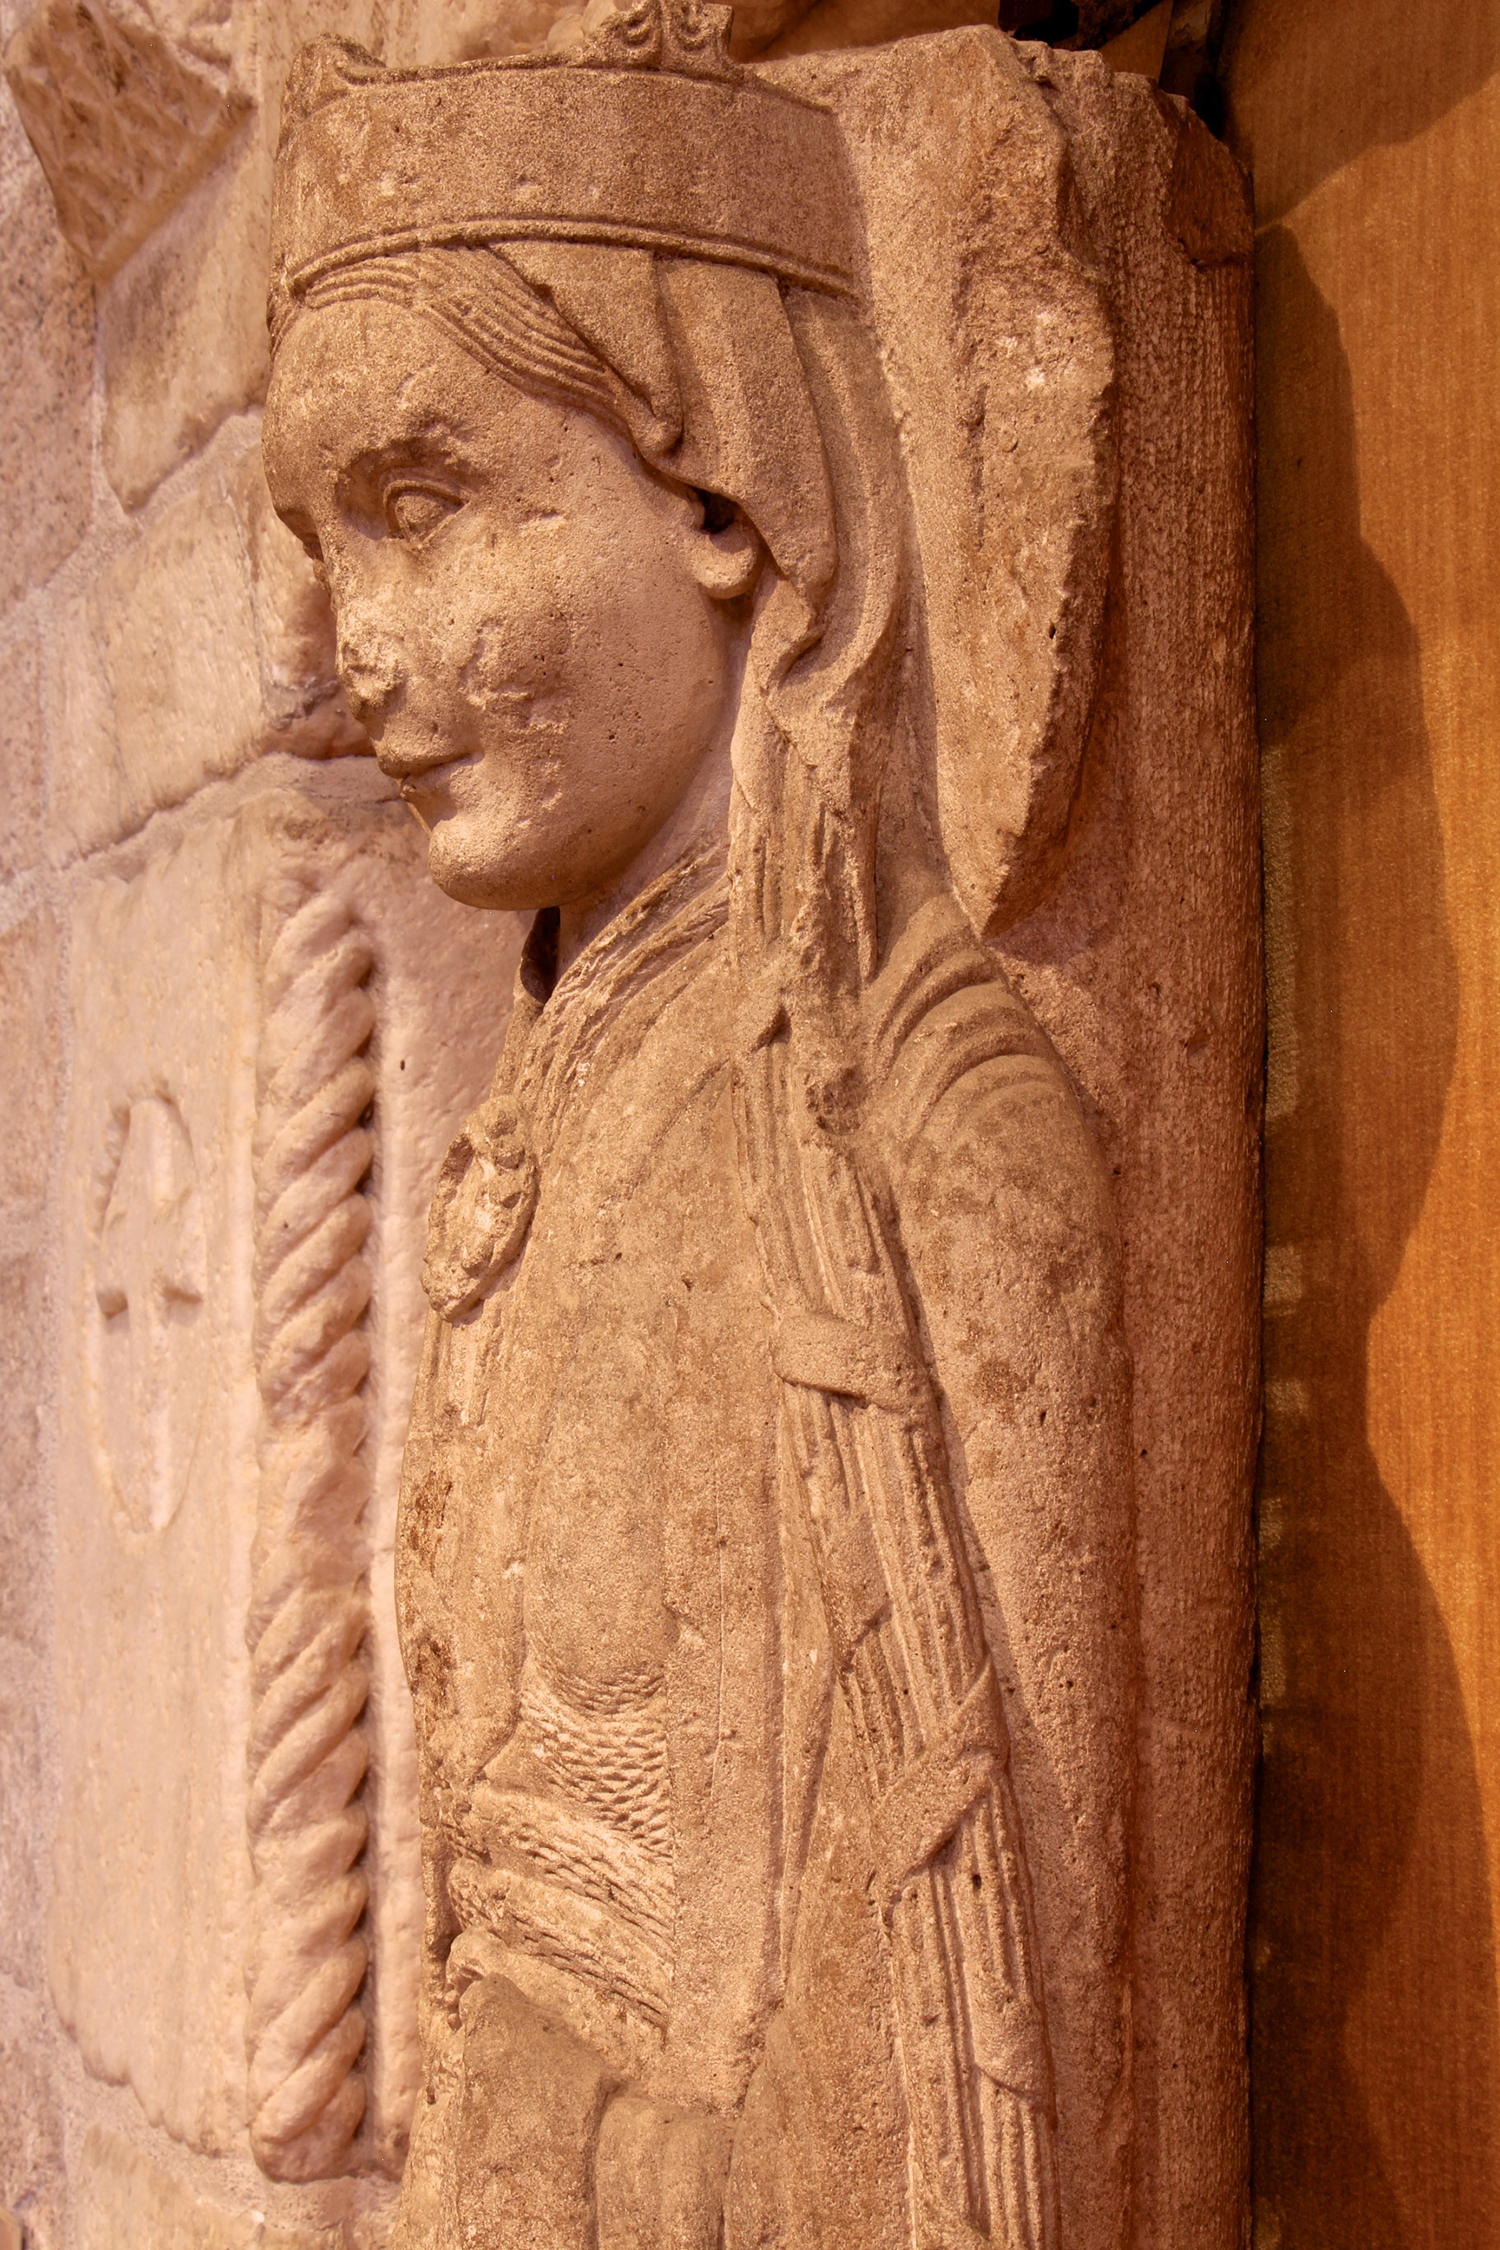 Figure 3: The back of the figure is attached to a round column. Her long hair is bound into braids.